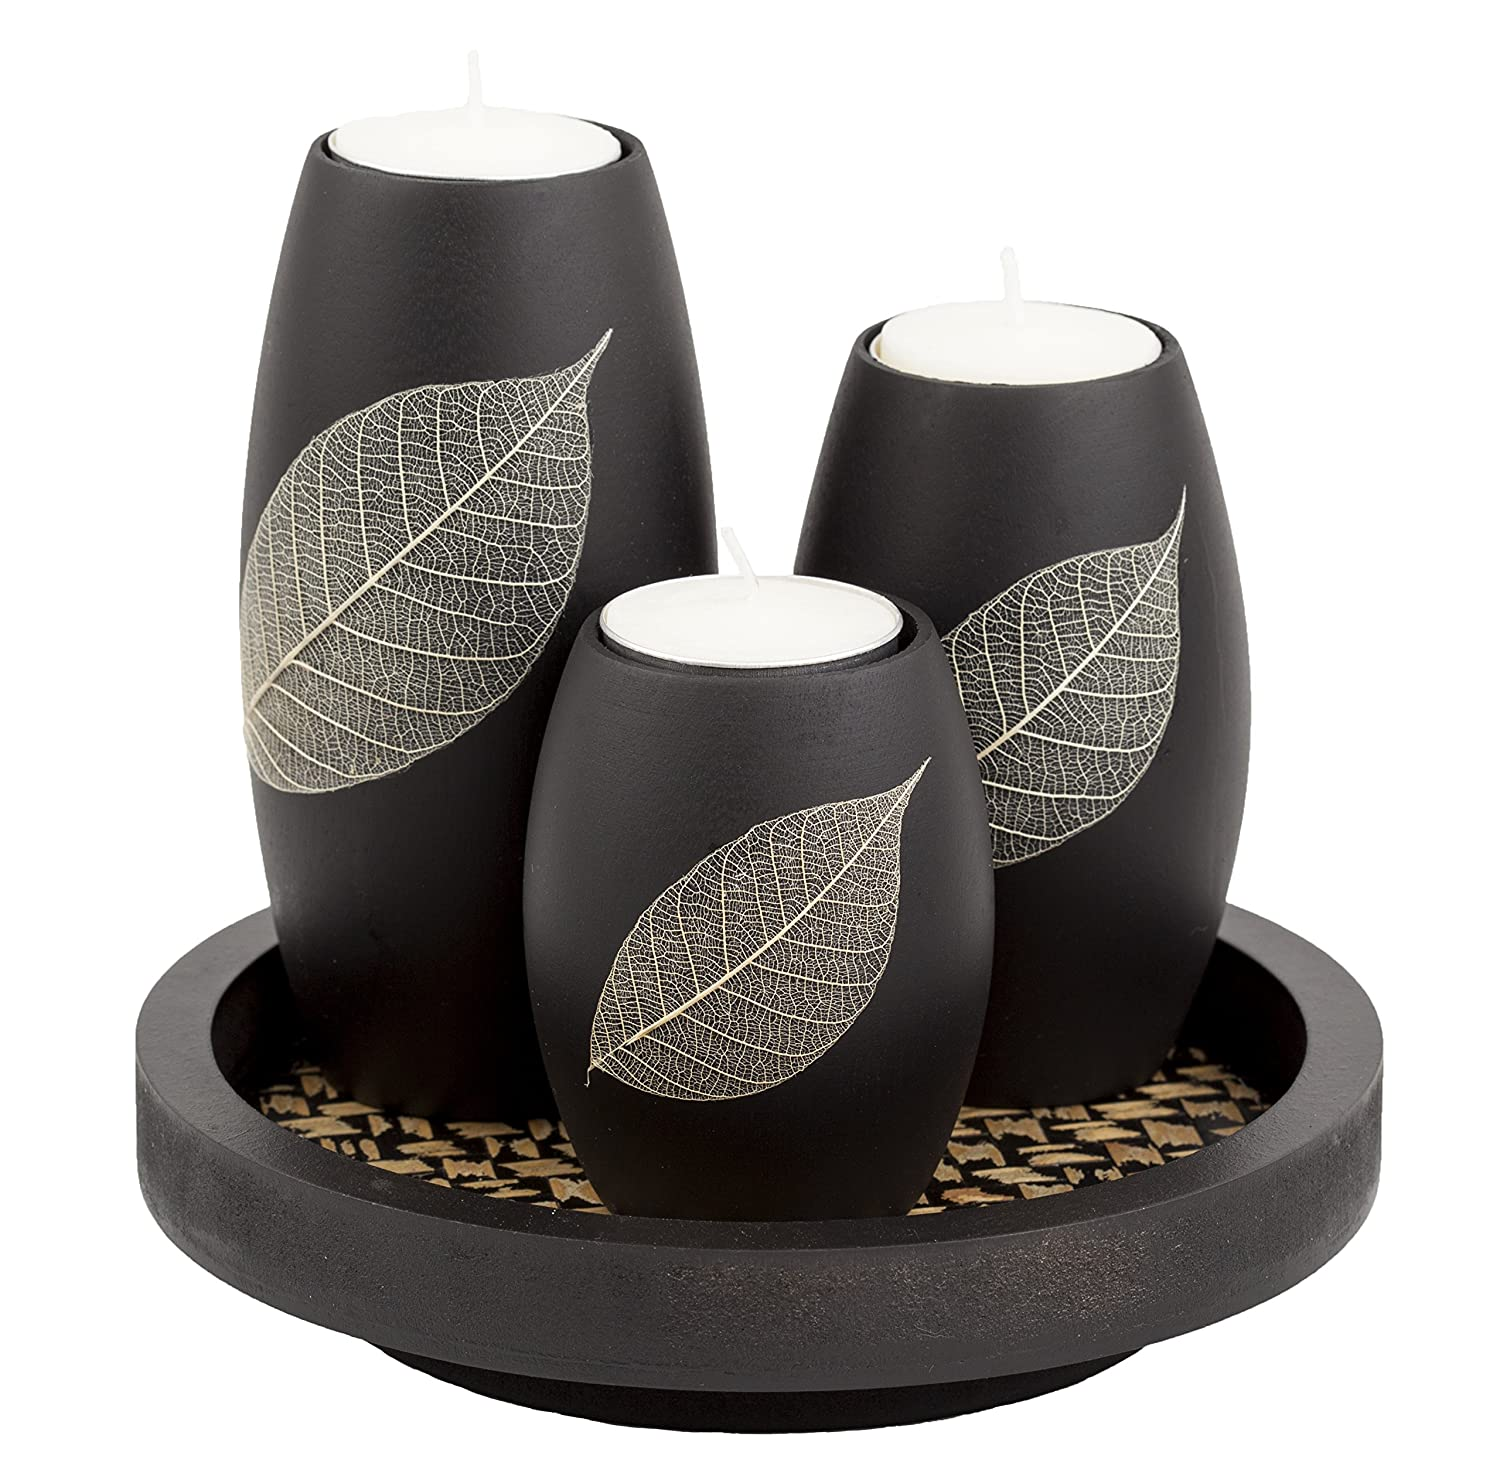 IYARA CRAFT Natural Candle Scape Set, 3 Decorative Candle Holders, Wood Tray(Leaf)